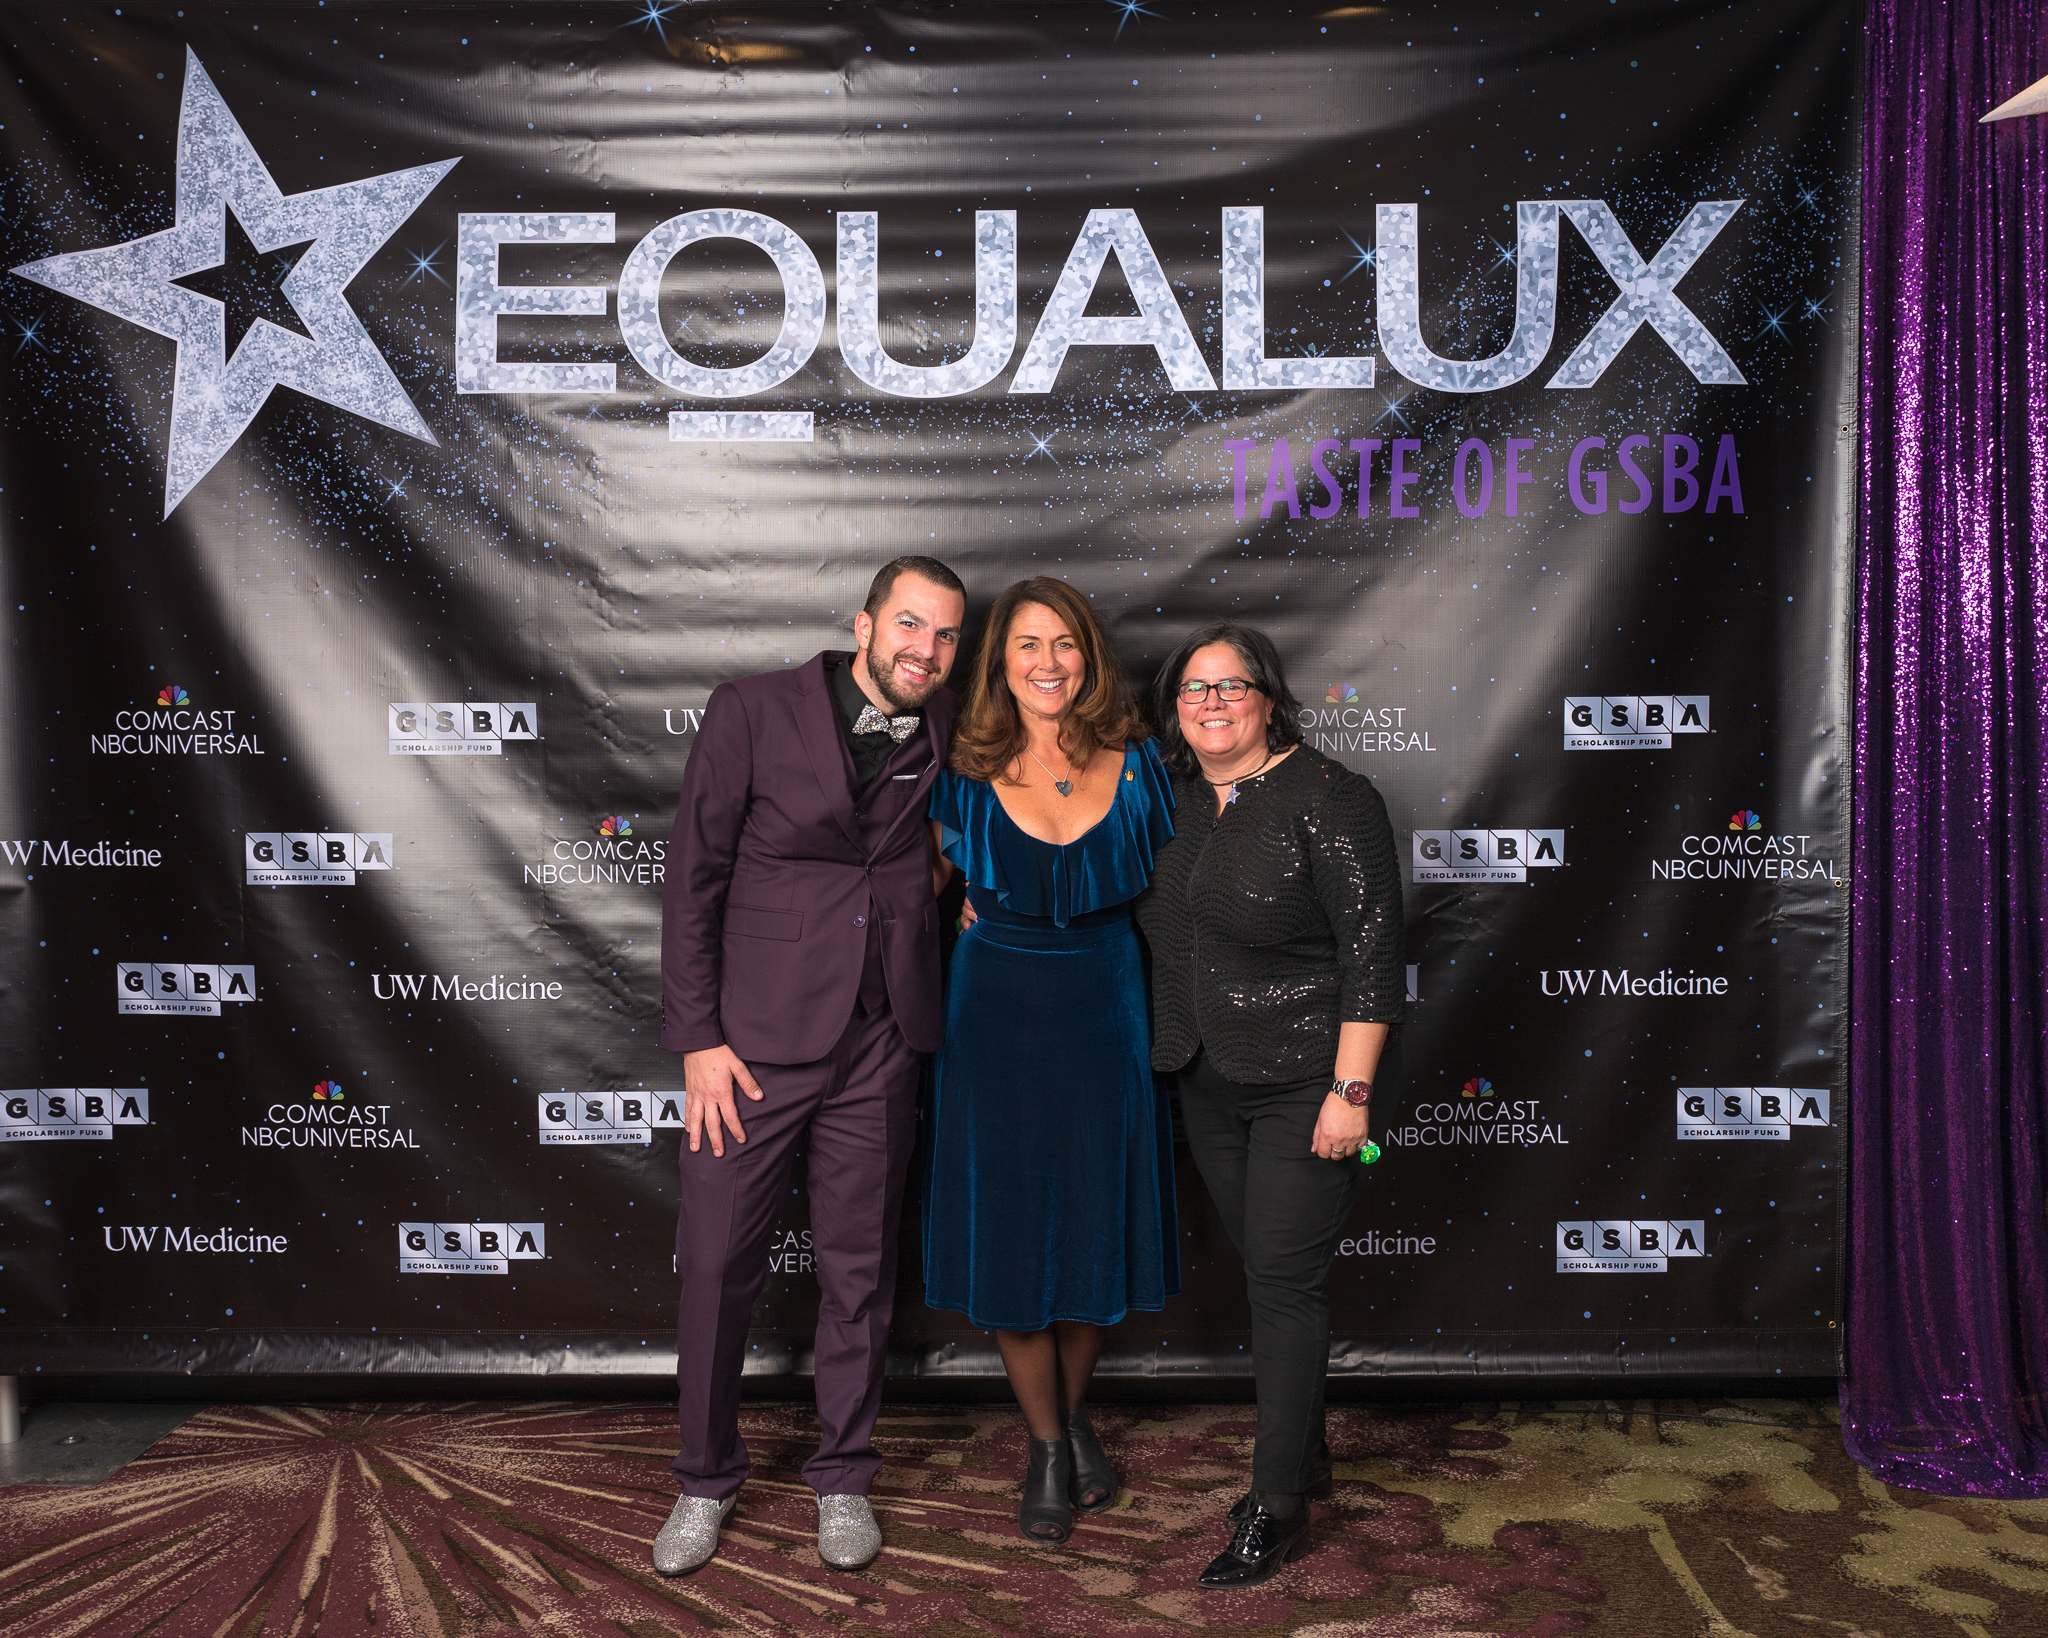 111718_GSBA EQUALUX at The Westin Seattle (Credit- Nate Gowdy)-173.jpg